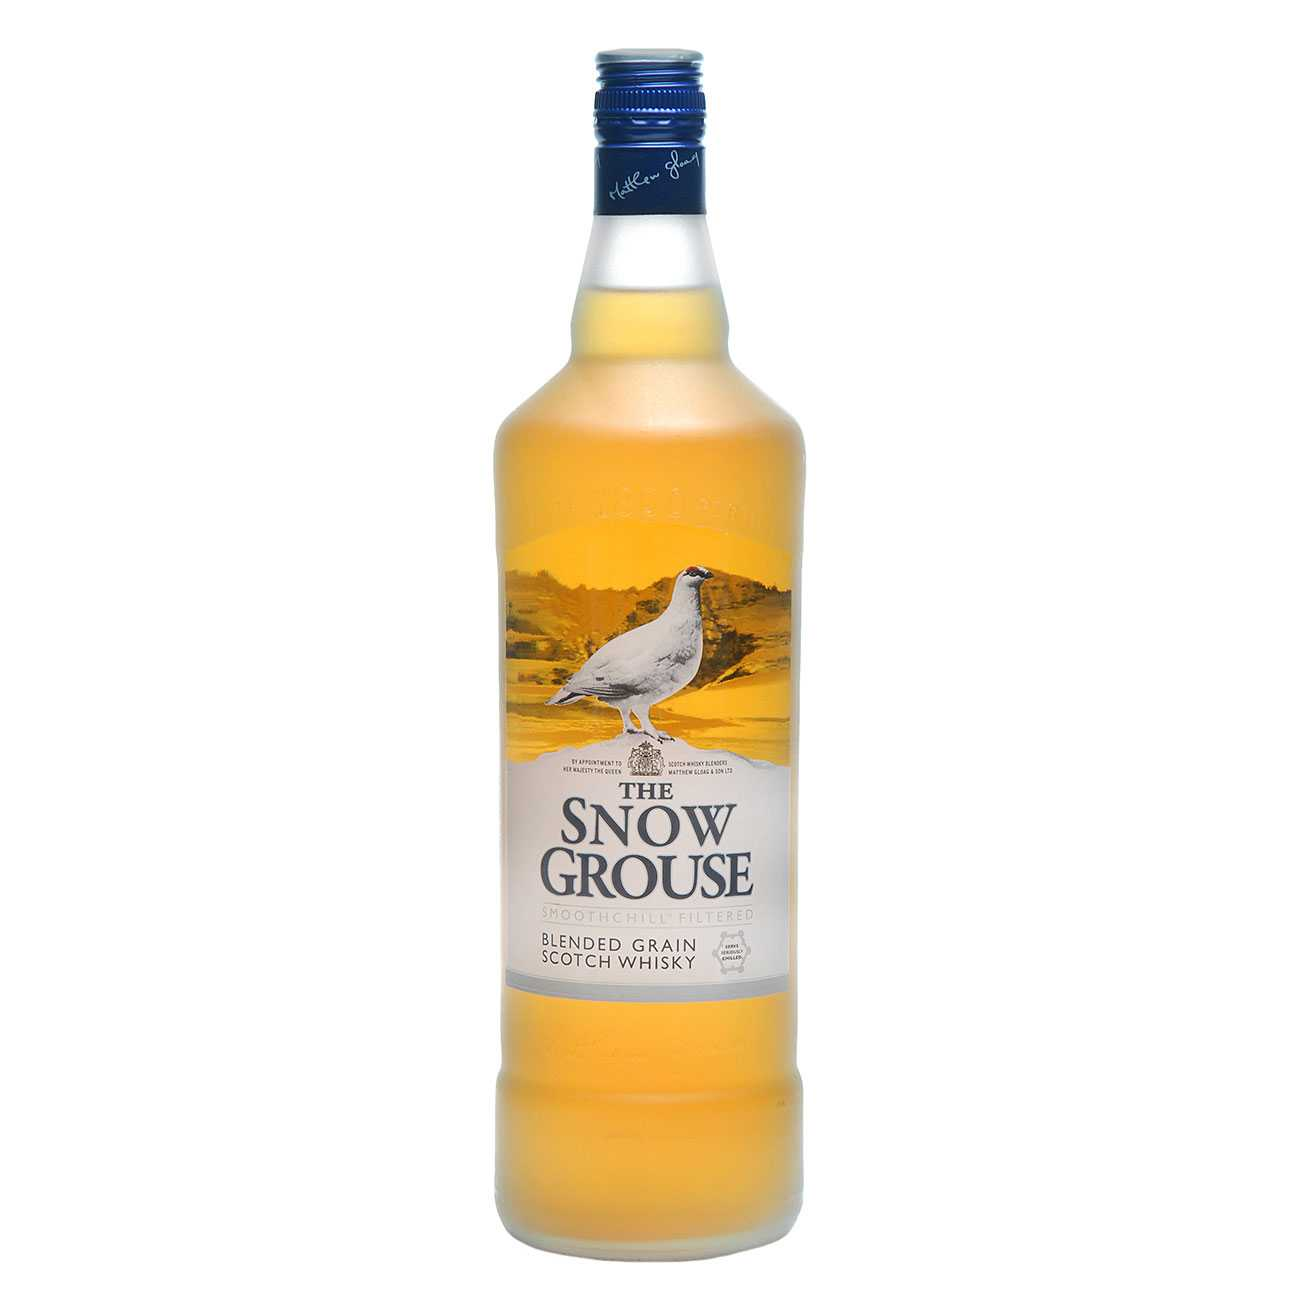 Whisky scotian, THE SNOW GROUSE 1000 ML, The Famous Grouse